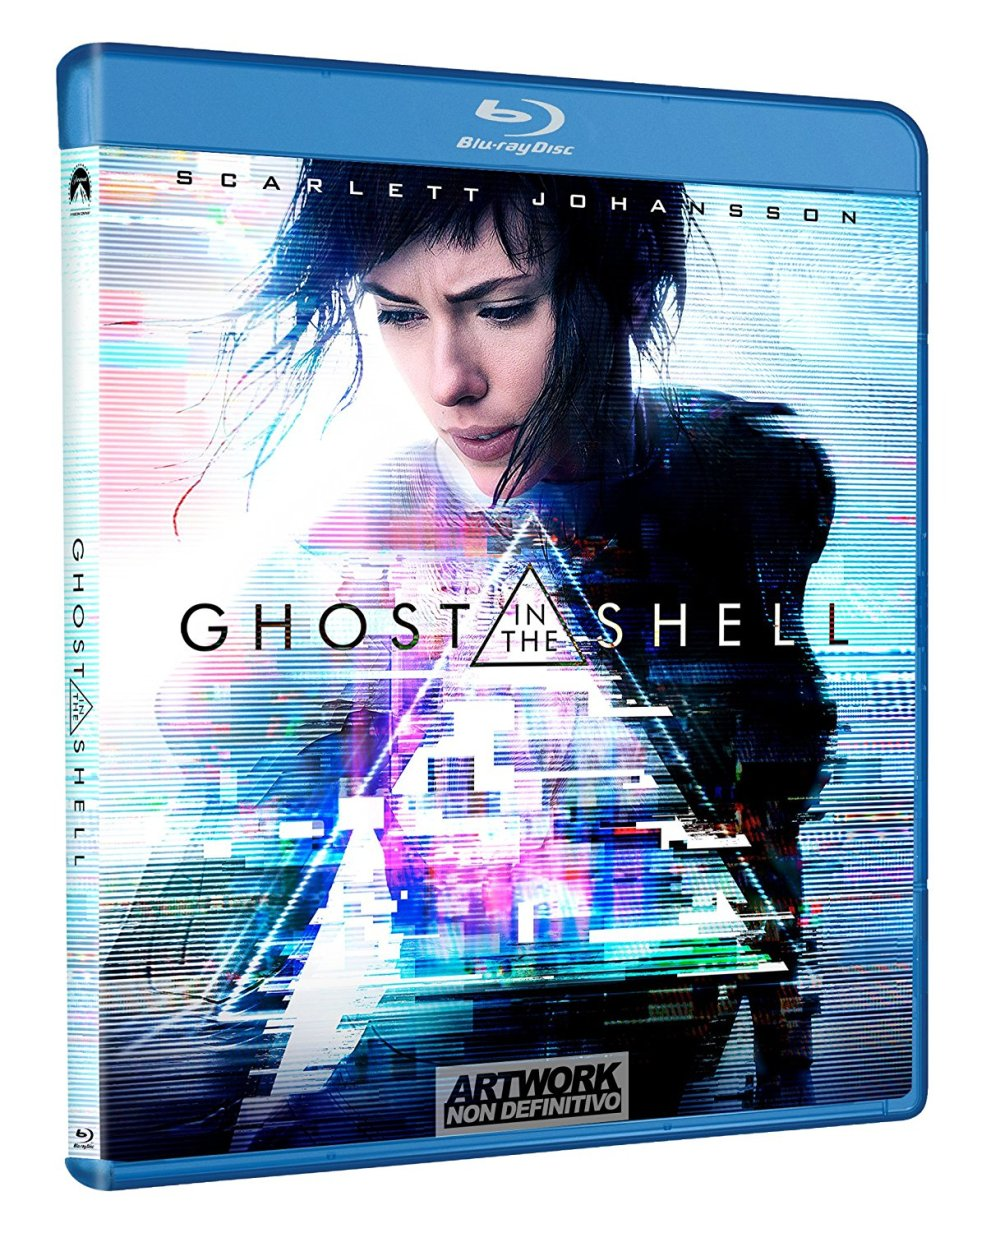 ghost in the shell 2 amazon blu ray_